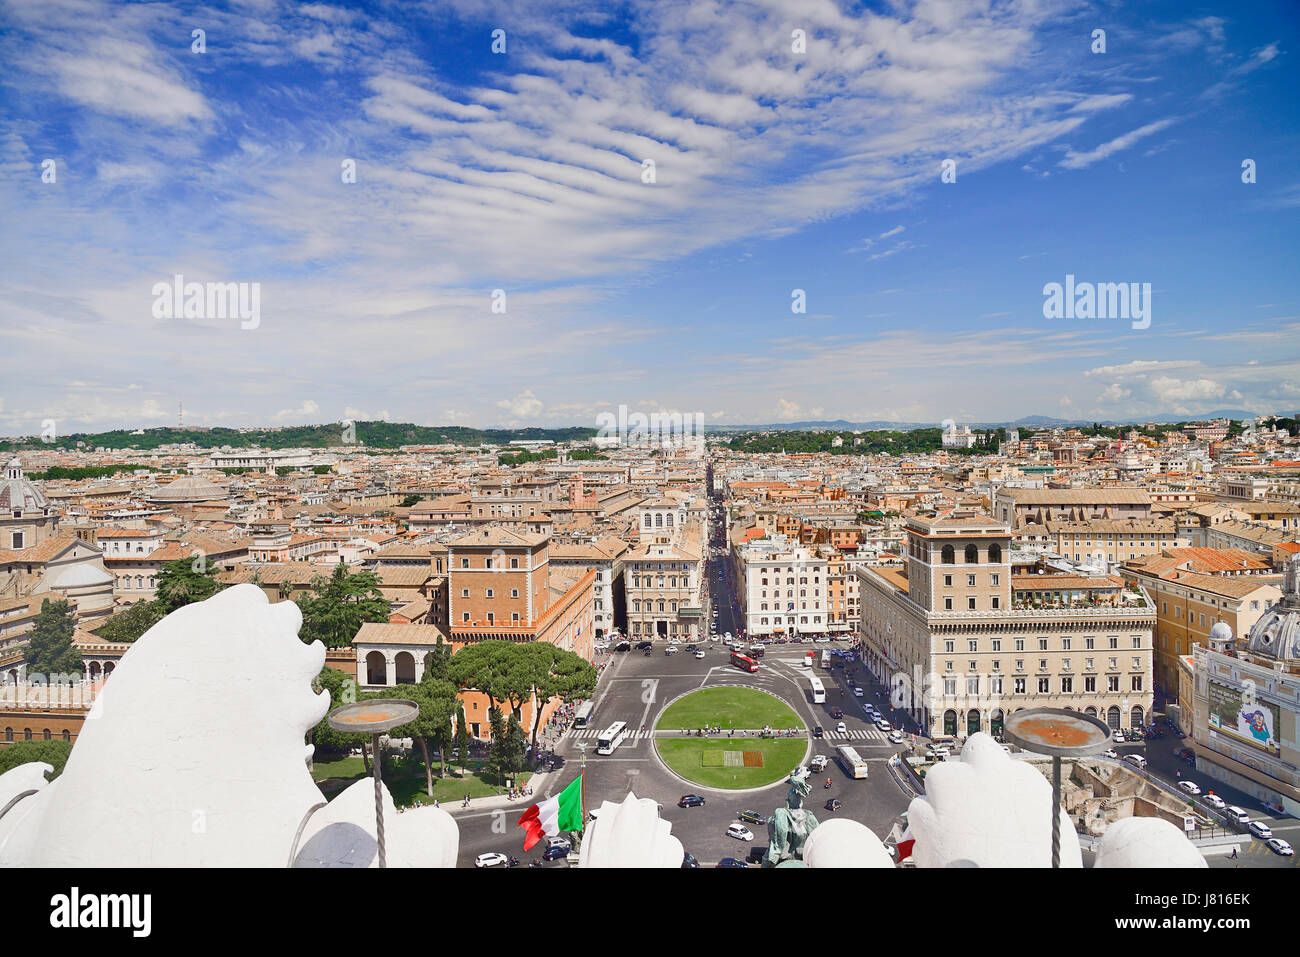 Italy Rome View From The Terrace Of The Vittorio Emanuele